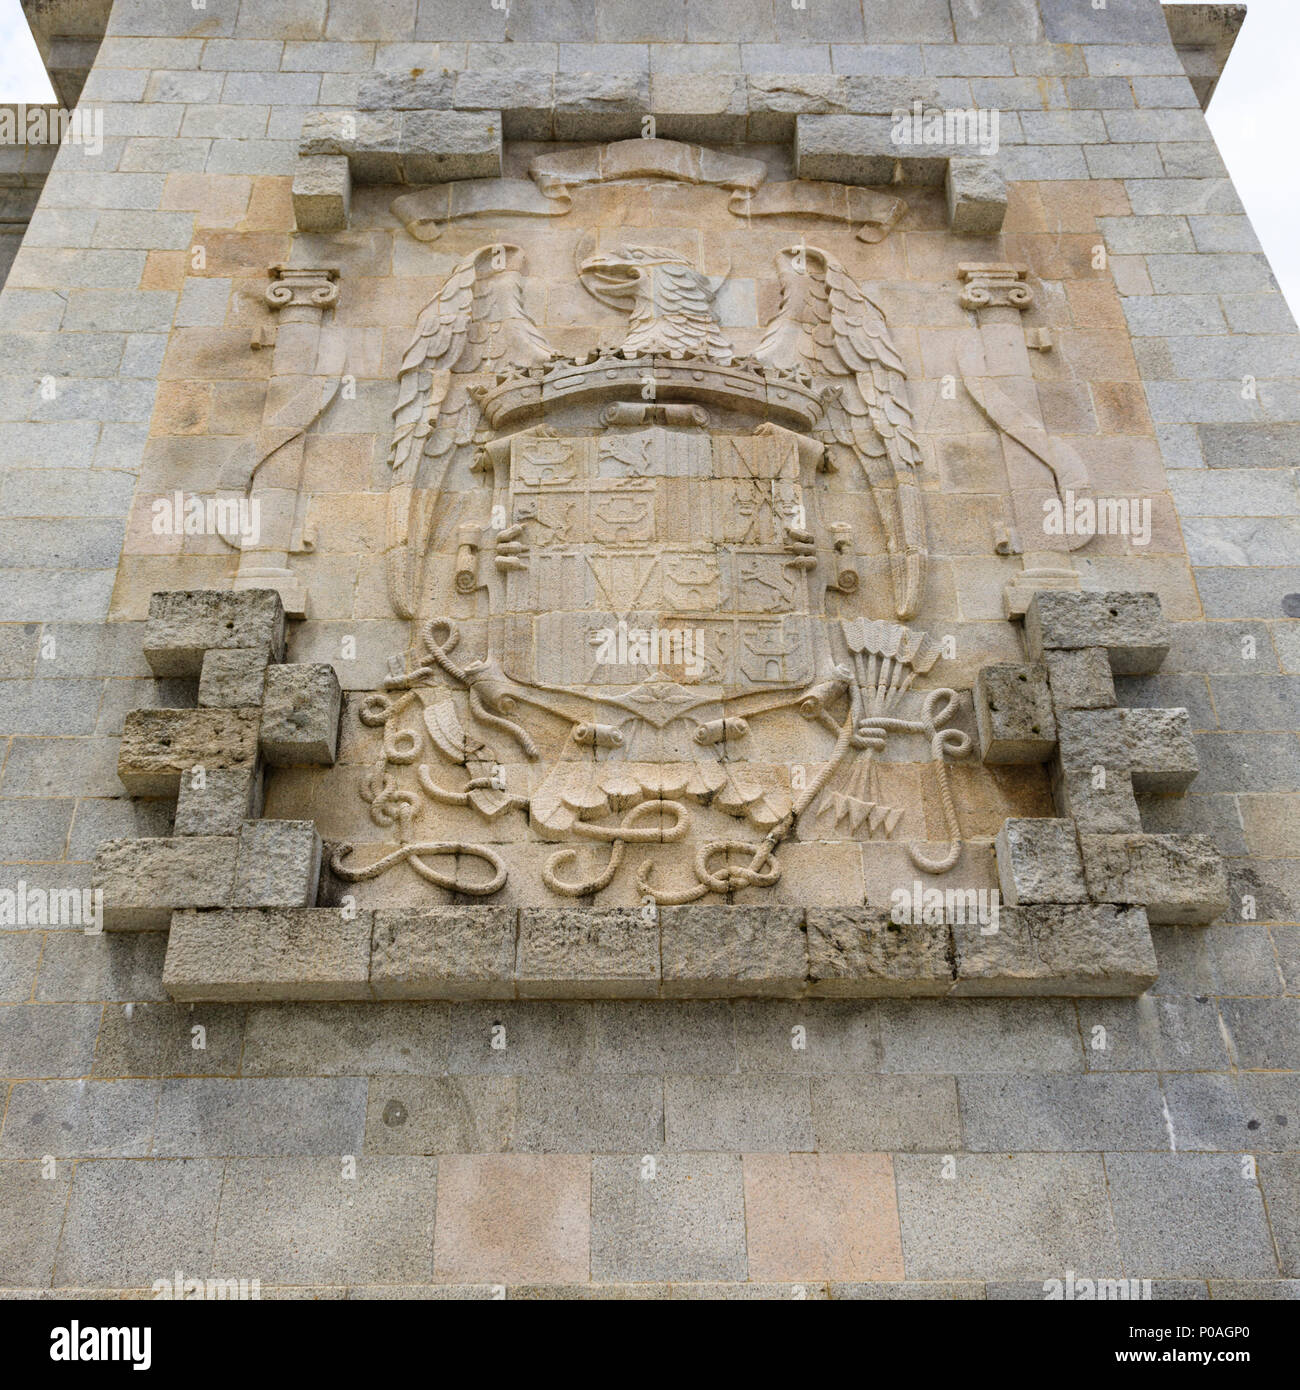 coat-of-arms-calle-de-los-caidos-valley-